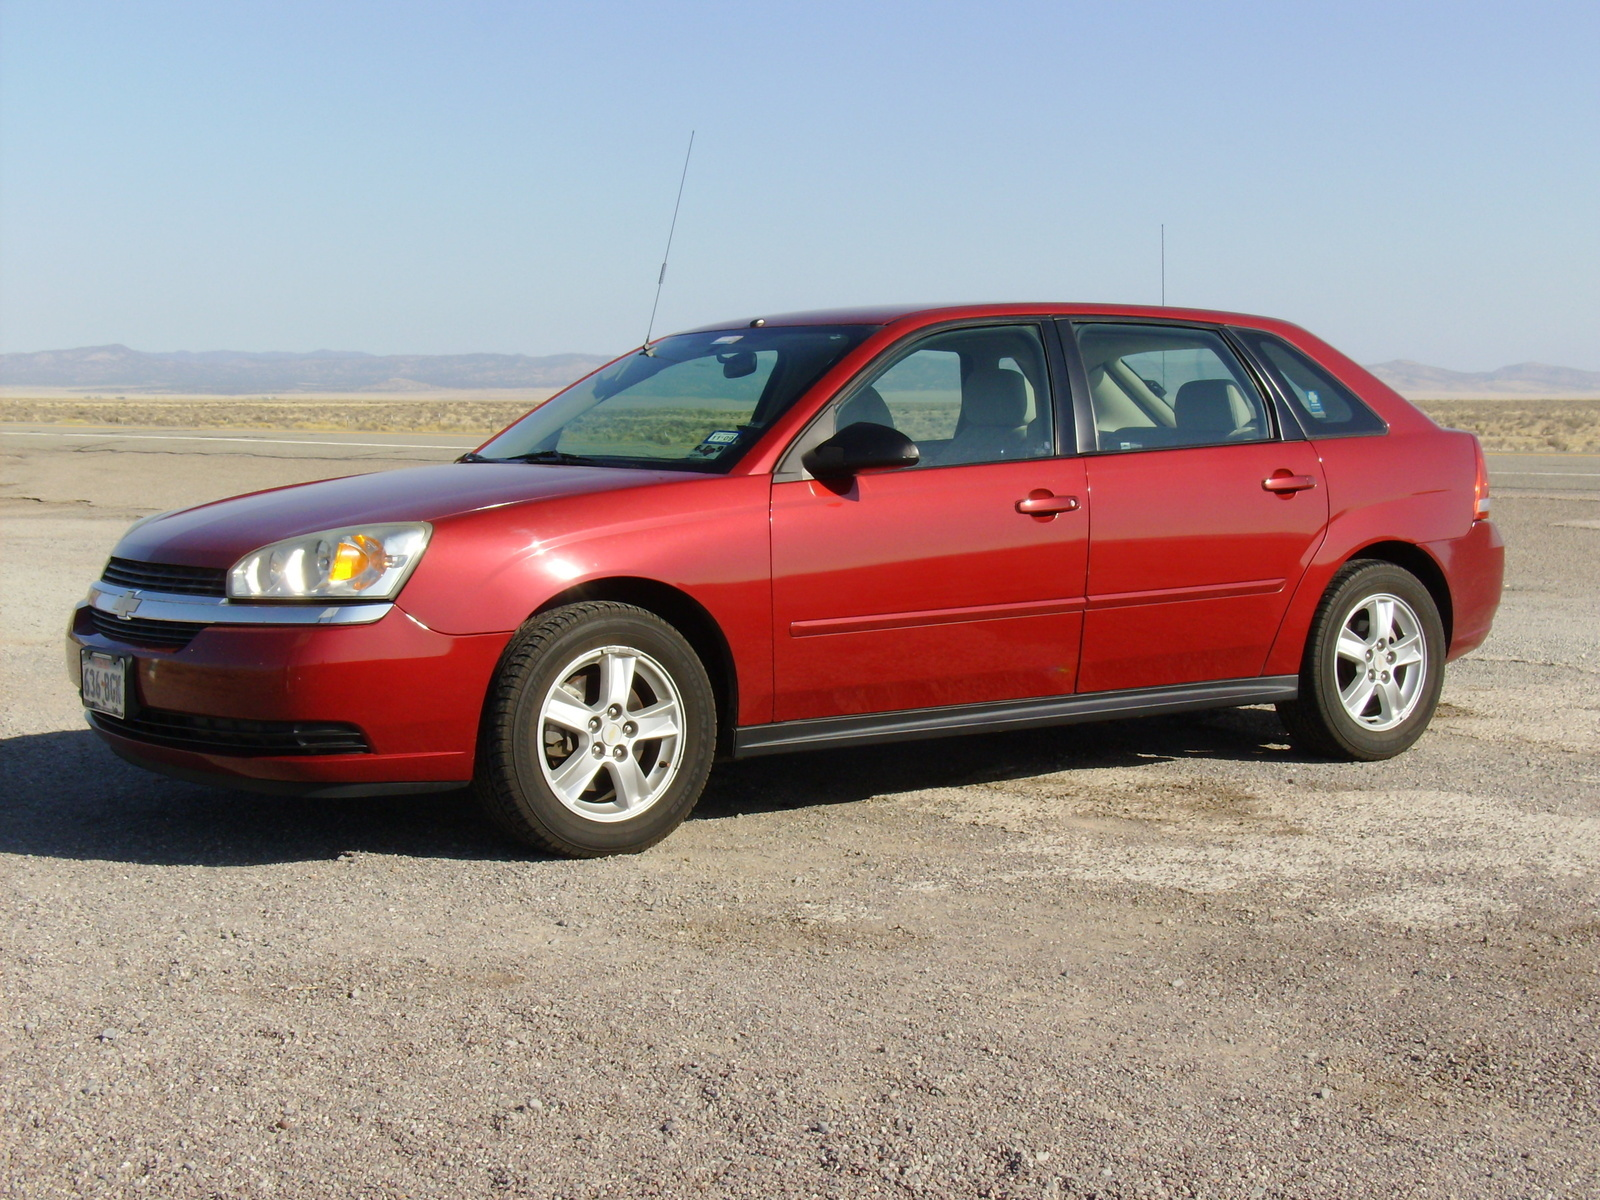 2005 Chevrolet Malibu Maxx - Overview